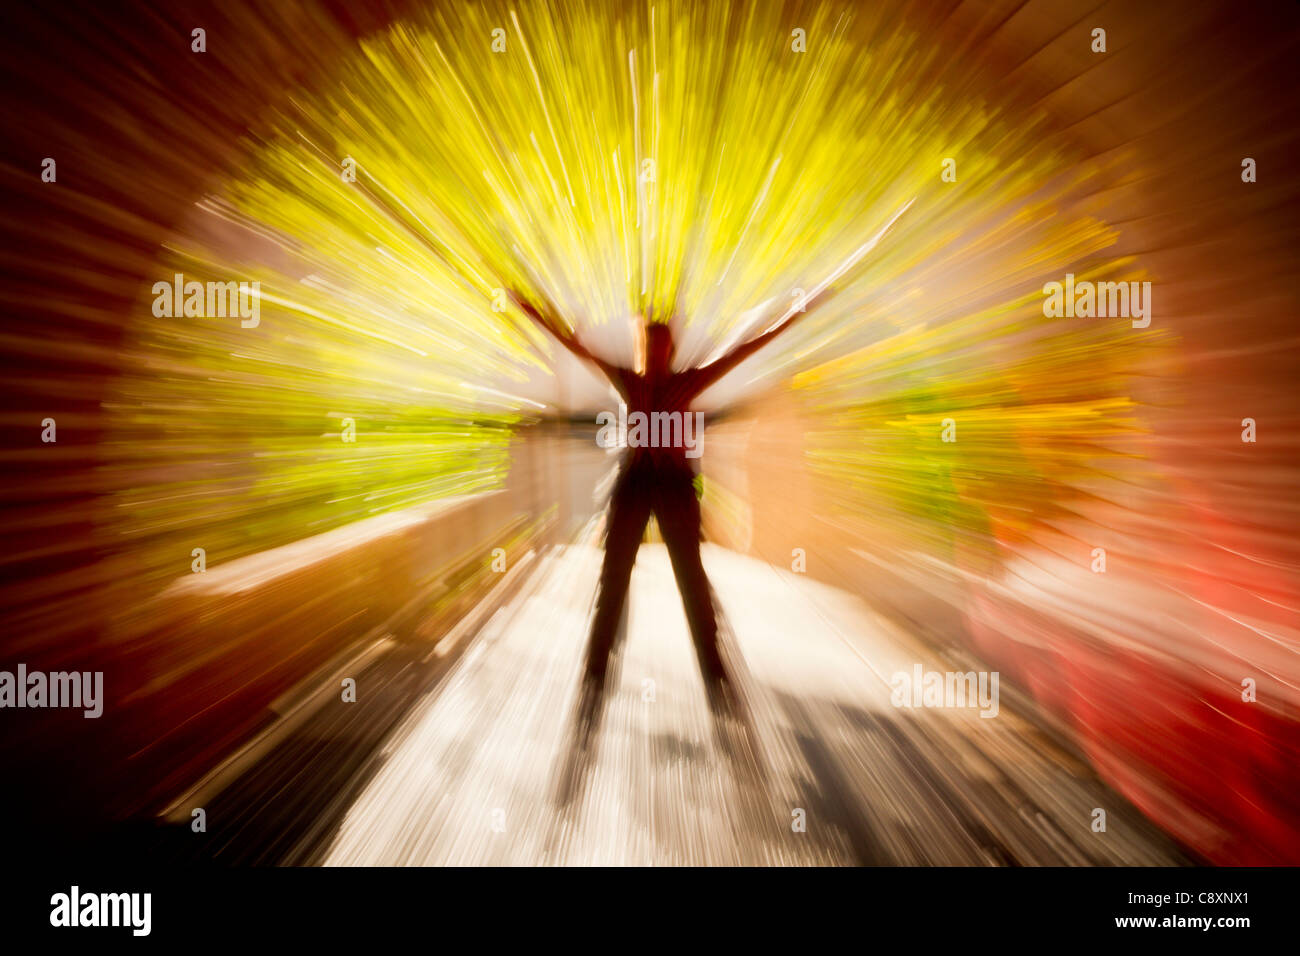 Abstract figure in tunnel with arms raised - Stock Image